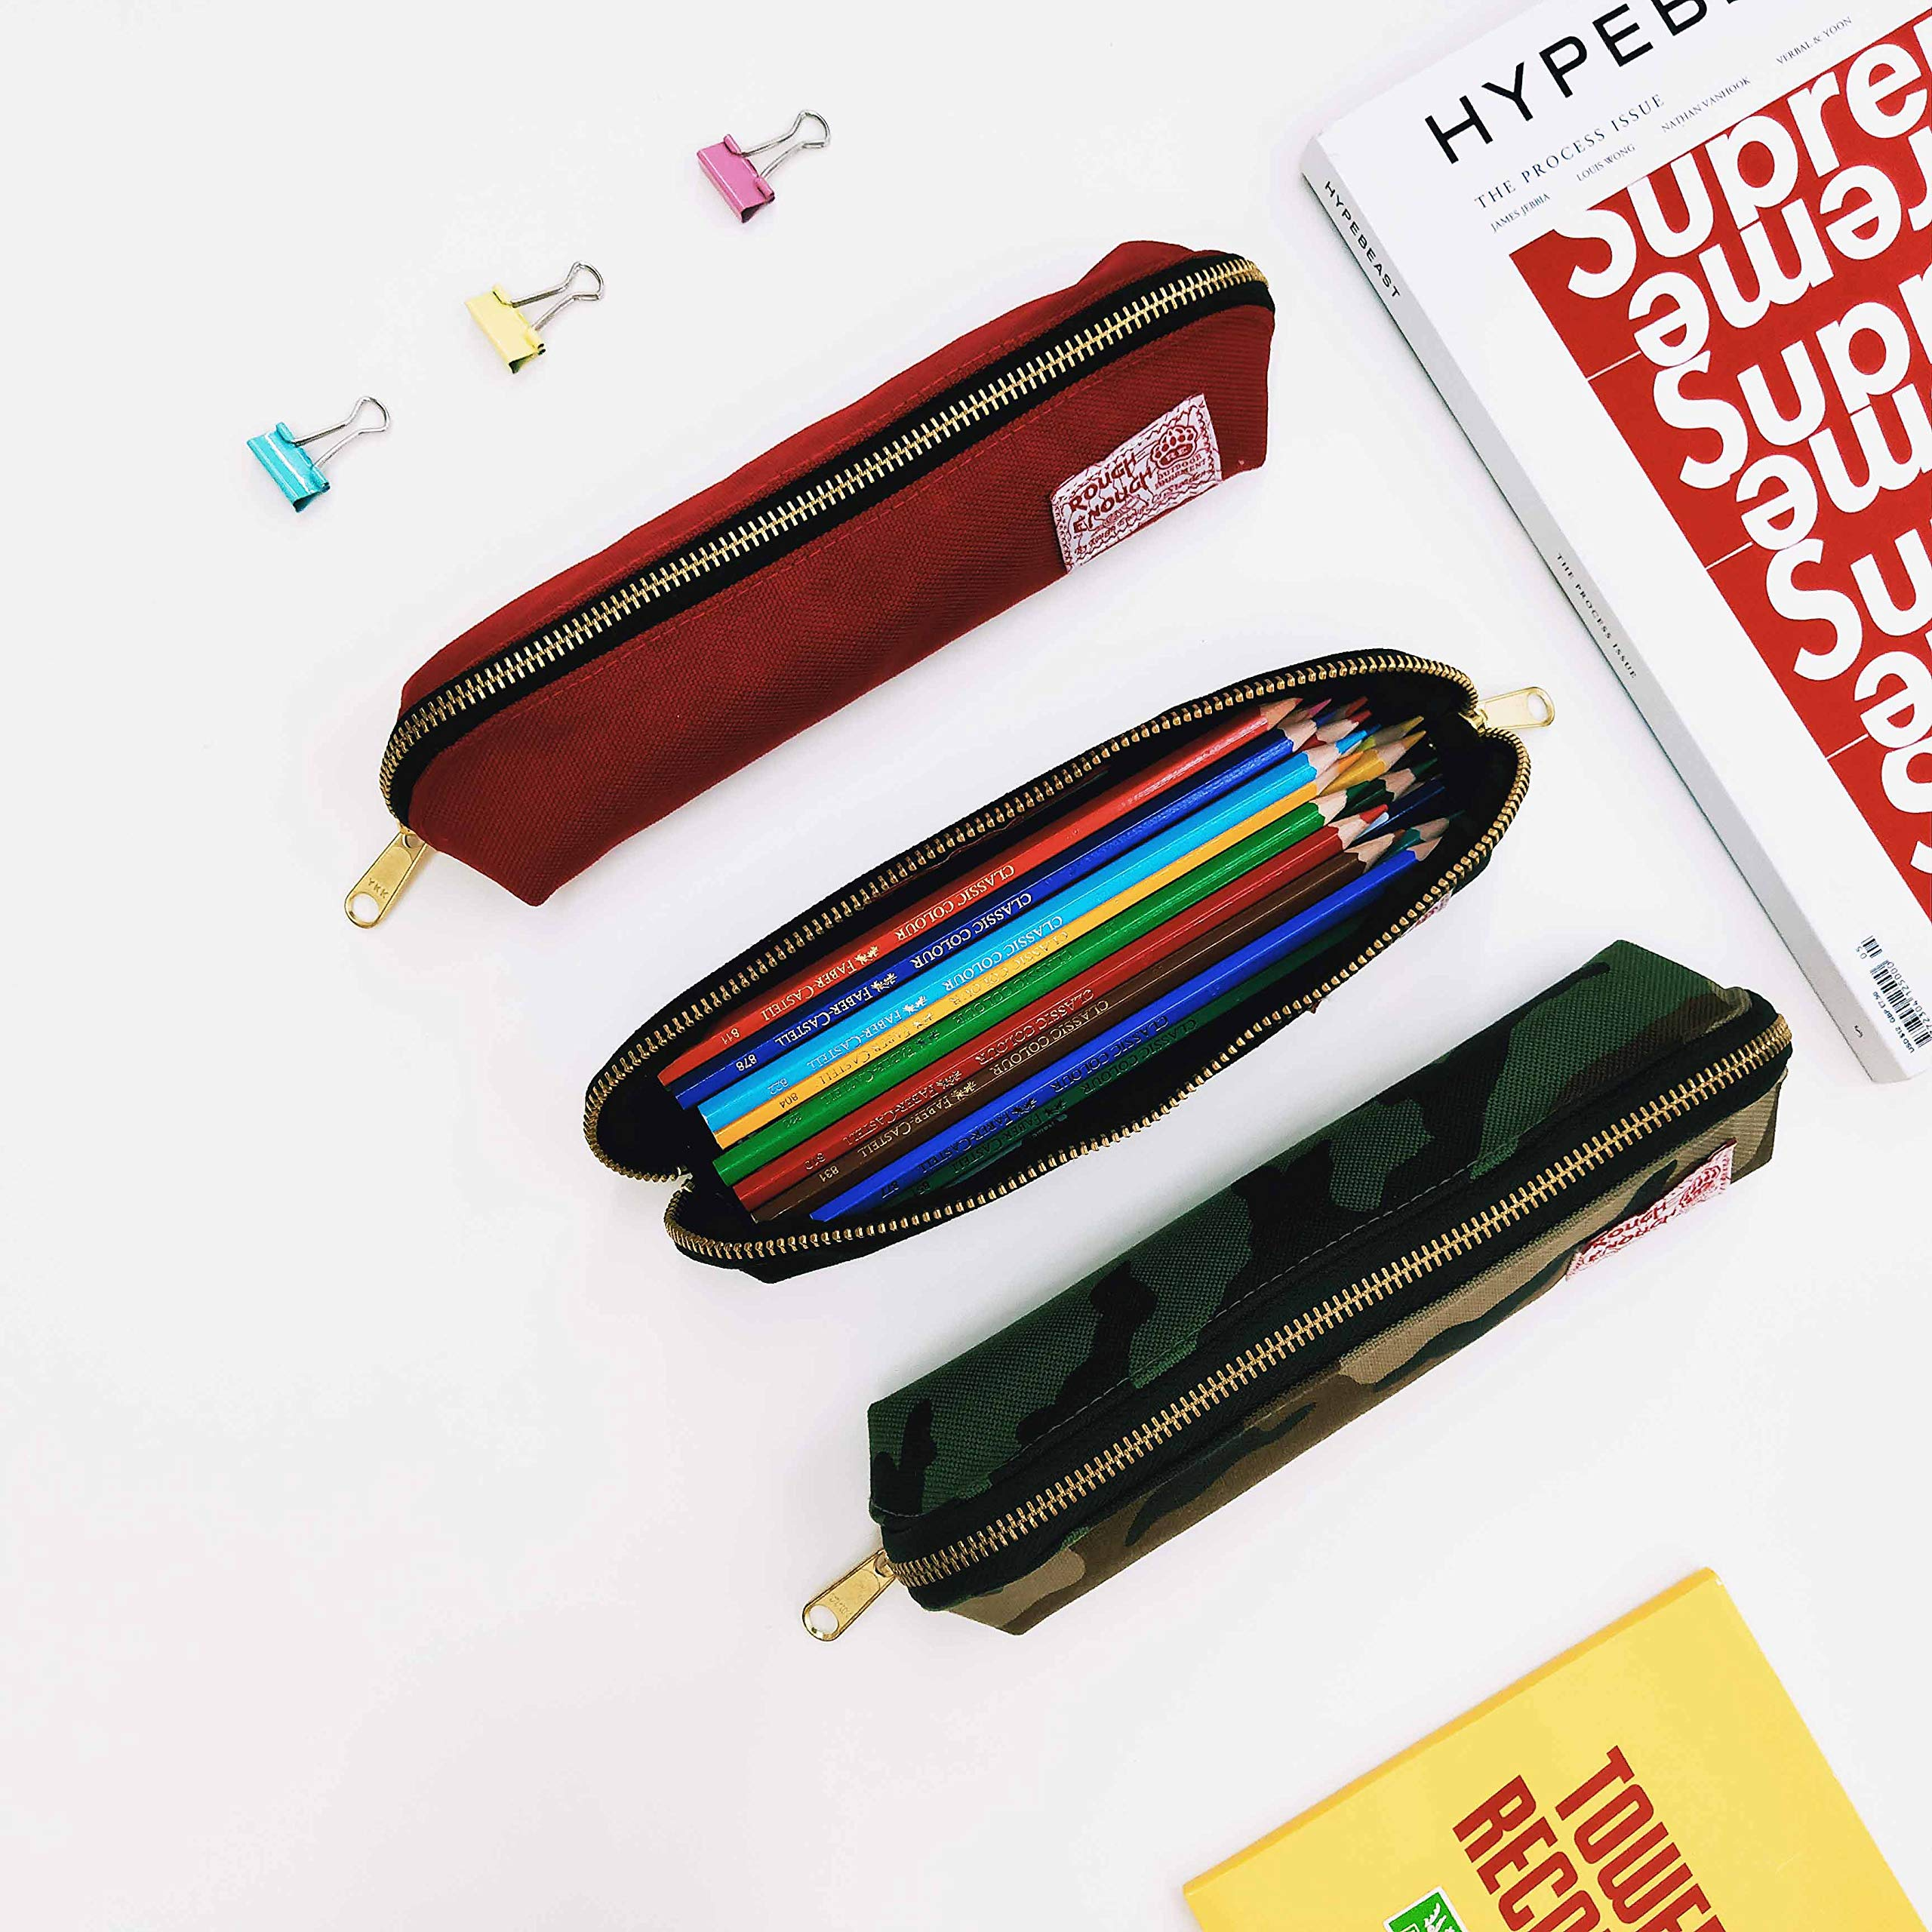 Rough Enough Multi-purpose CORDURA Polyester Long Slim Classic Portable Pencil Case Pouch Holder Organizer with YKK Gold Zipper for Stationary Cosmetics Accessories Kids Boys Students at Schools Black by ROUGH ENOUGH (Image #7)